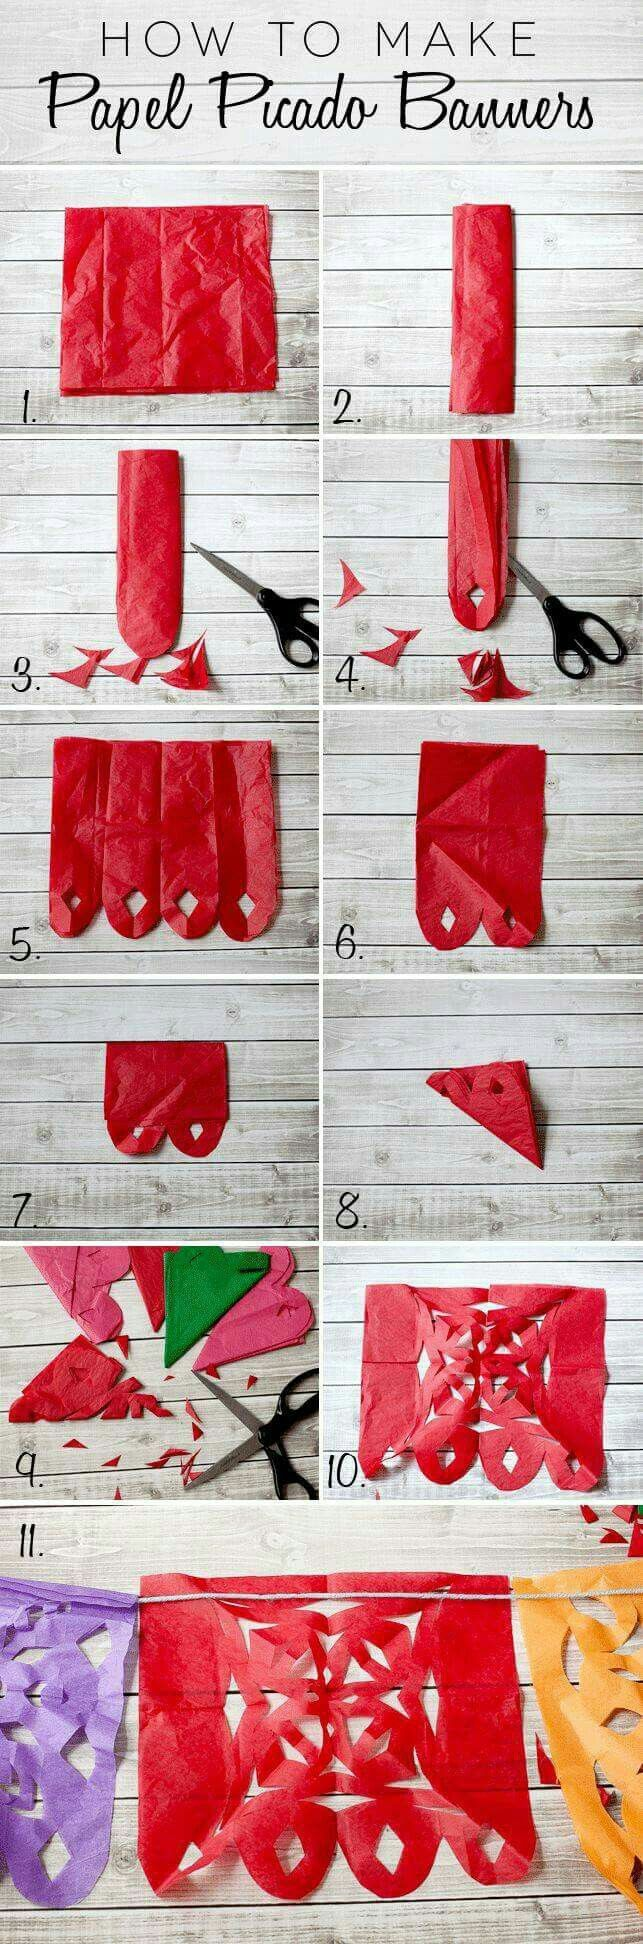 Mexican Christmas Party Ideas Part - 44: DIY ~ How To Make Mexican Fiesta Or Cinco De Mayo Papel Picado Banners.